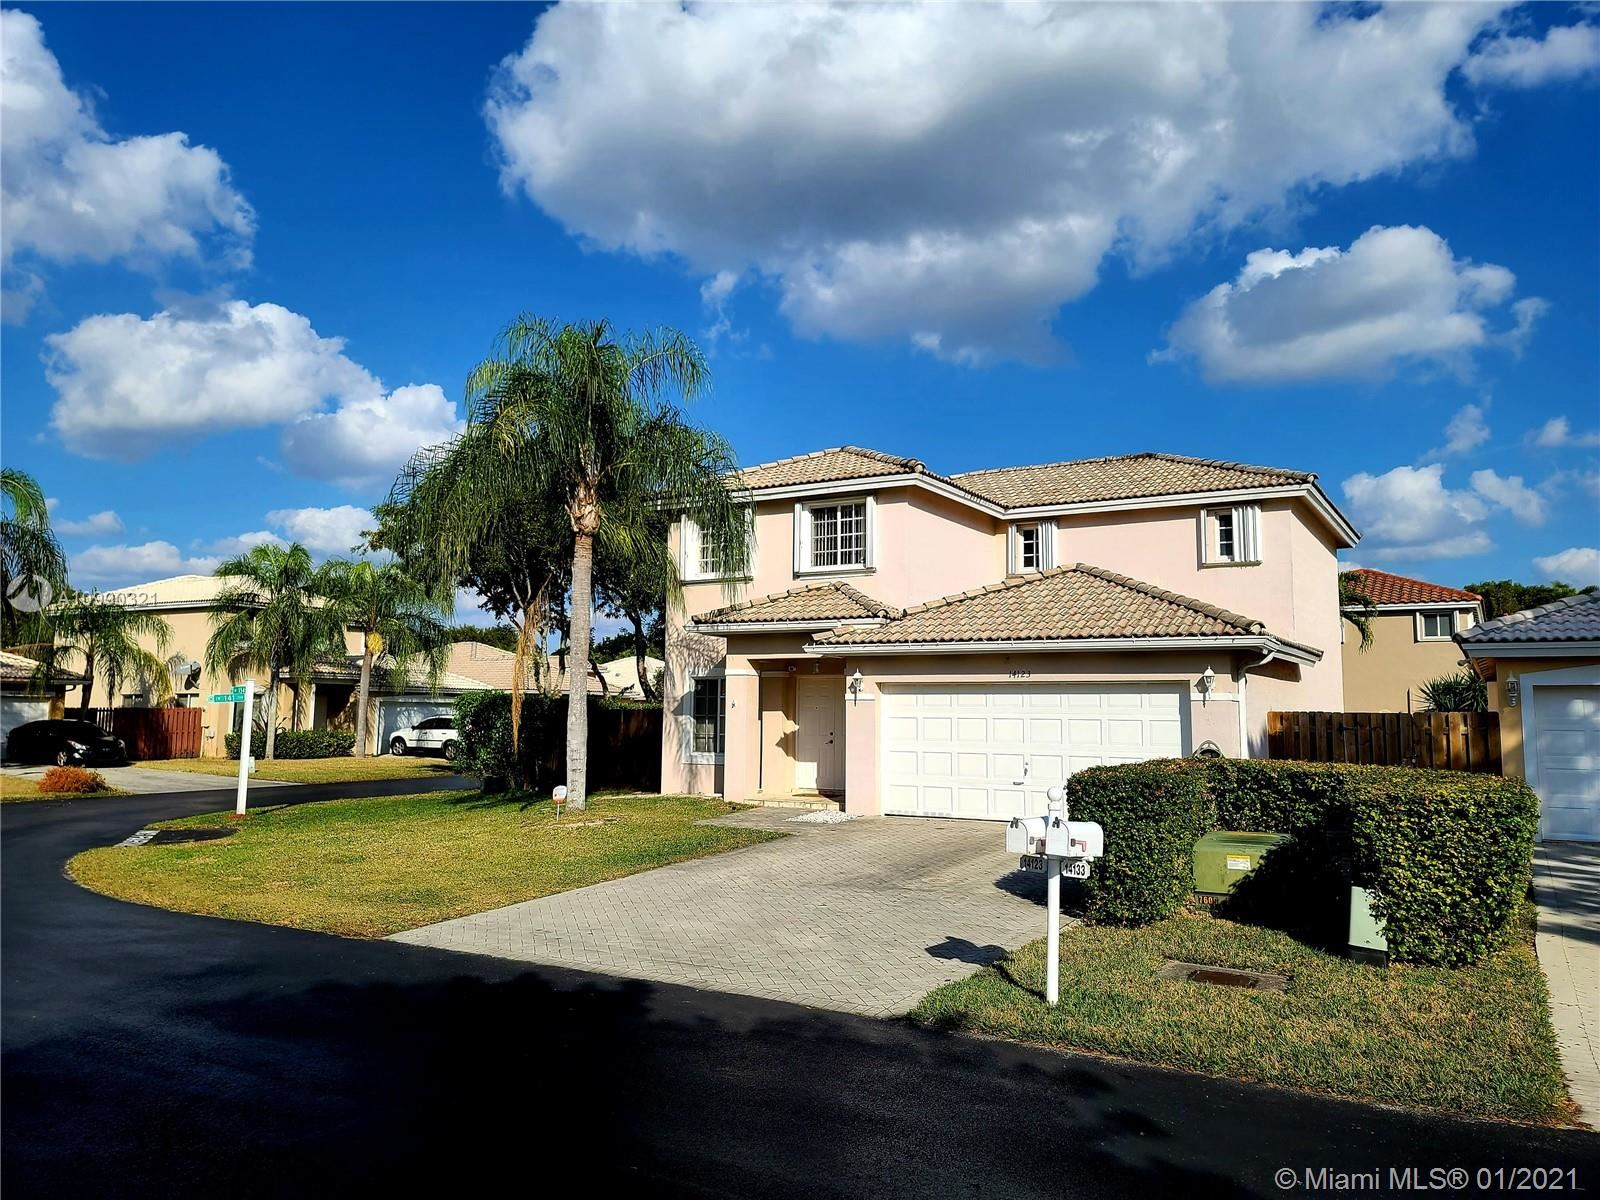 14123 SW 154Th PL, Miami, FL 33196 - #: A10990321